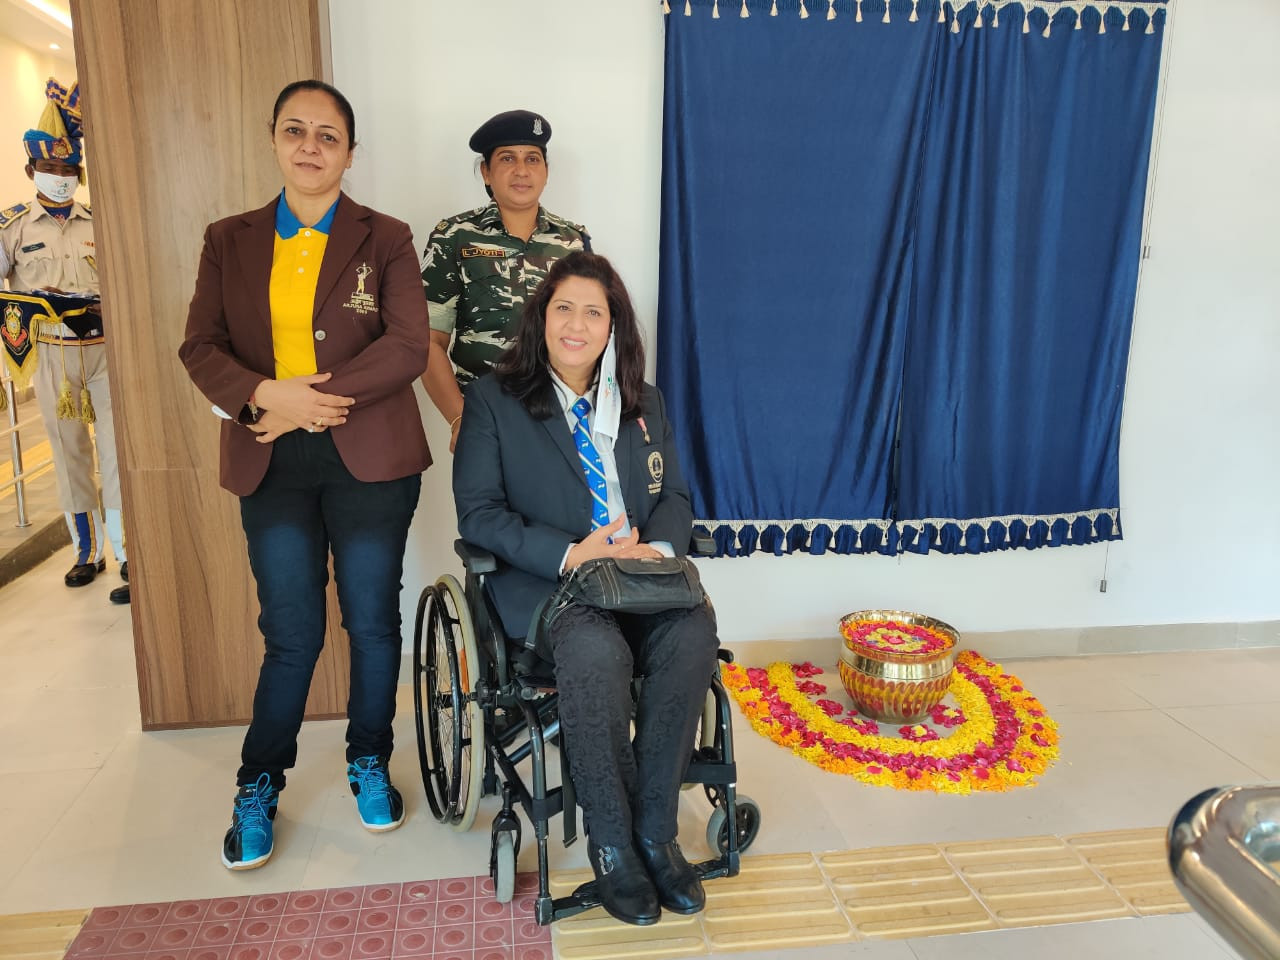 Paralympic Committee of India welcomes new sports centre for wounded soldiers